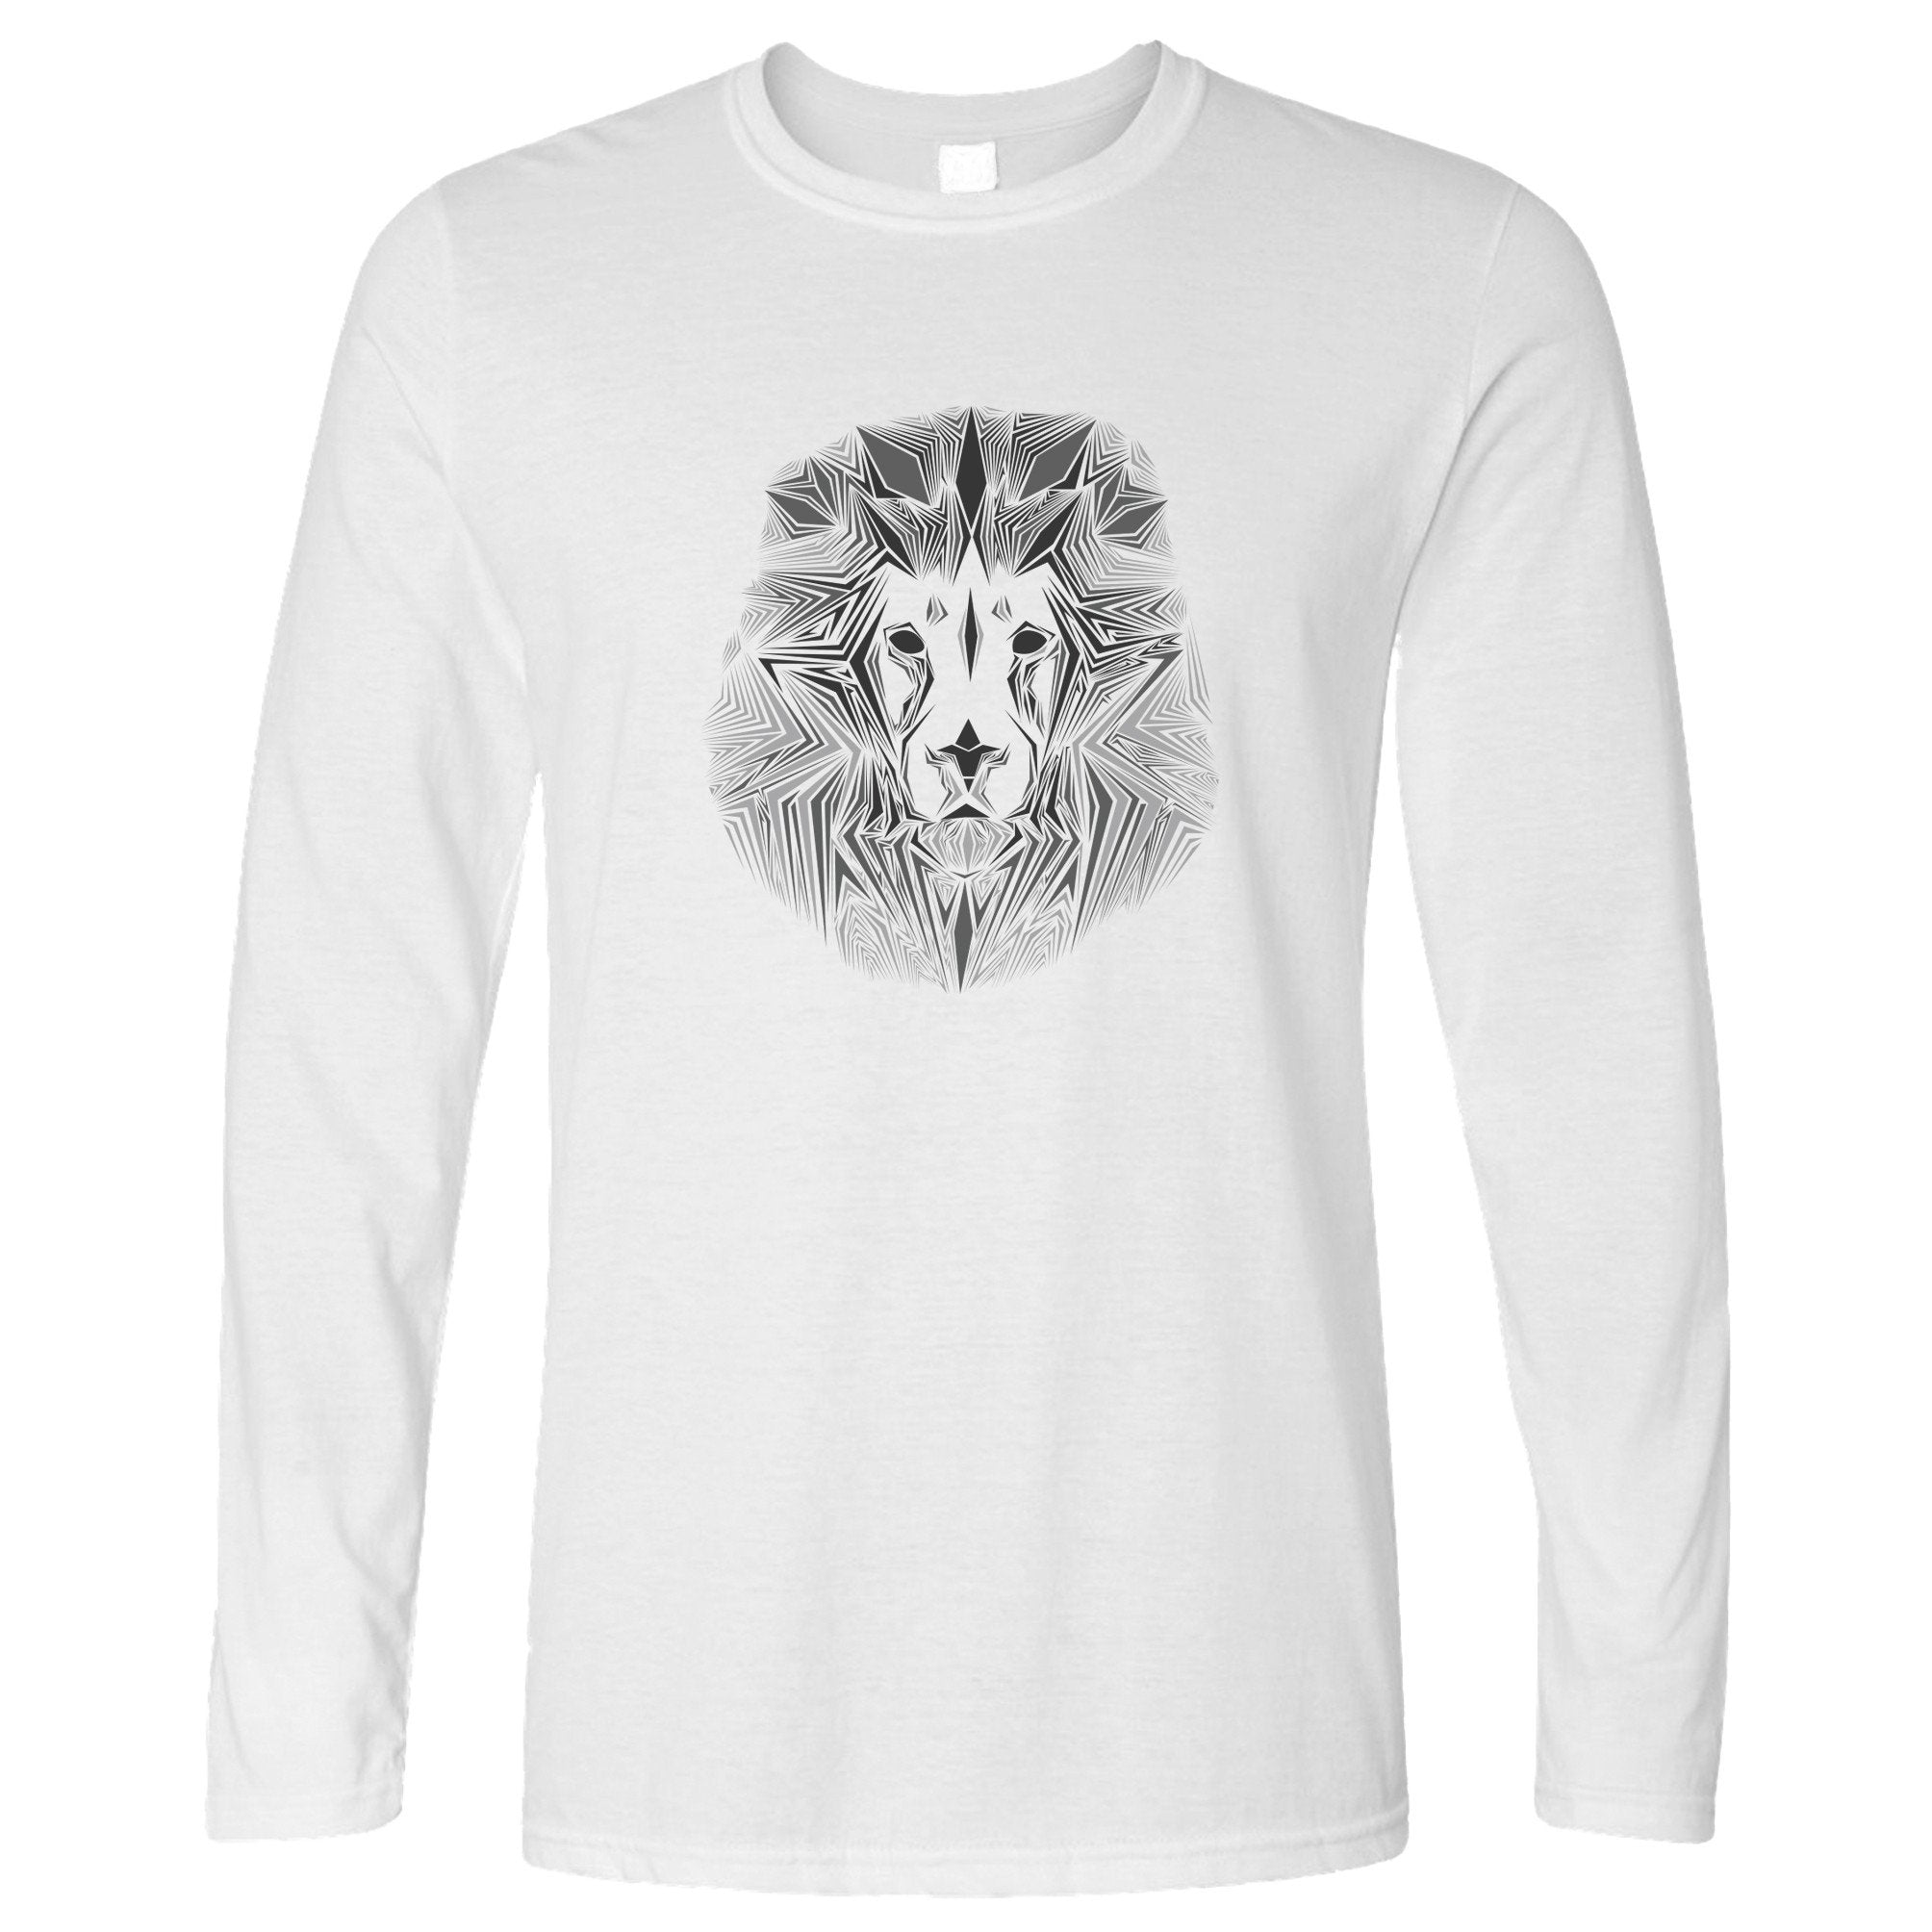 Wildlife Art Long Sleeve Geometric Lion Graphic T-Shirt